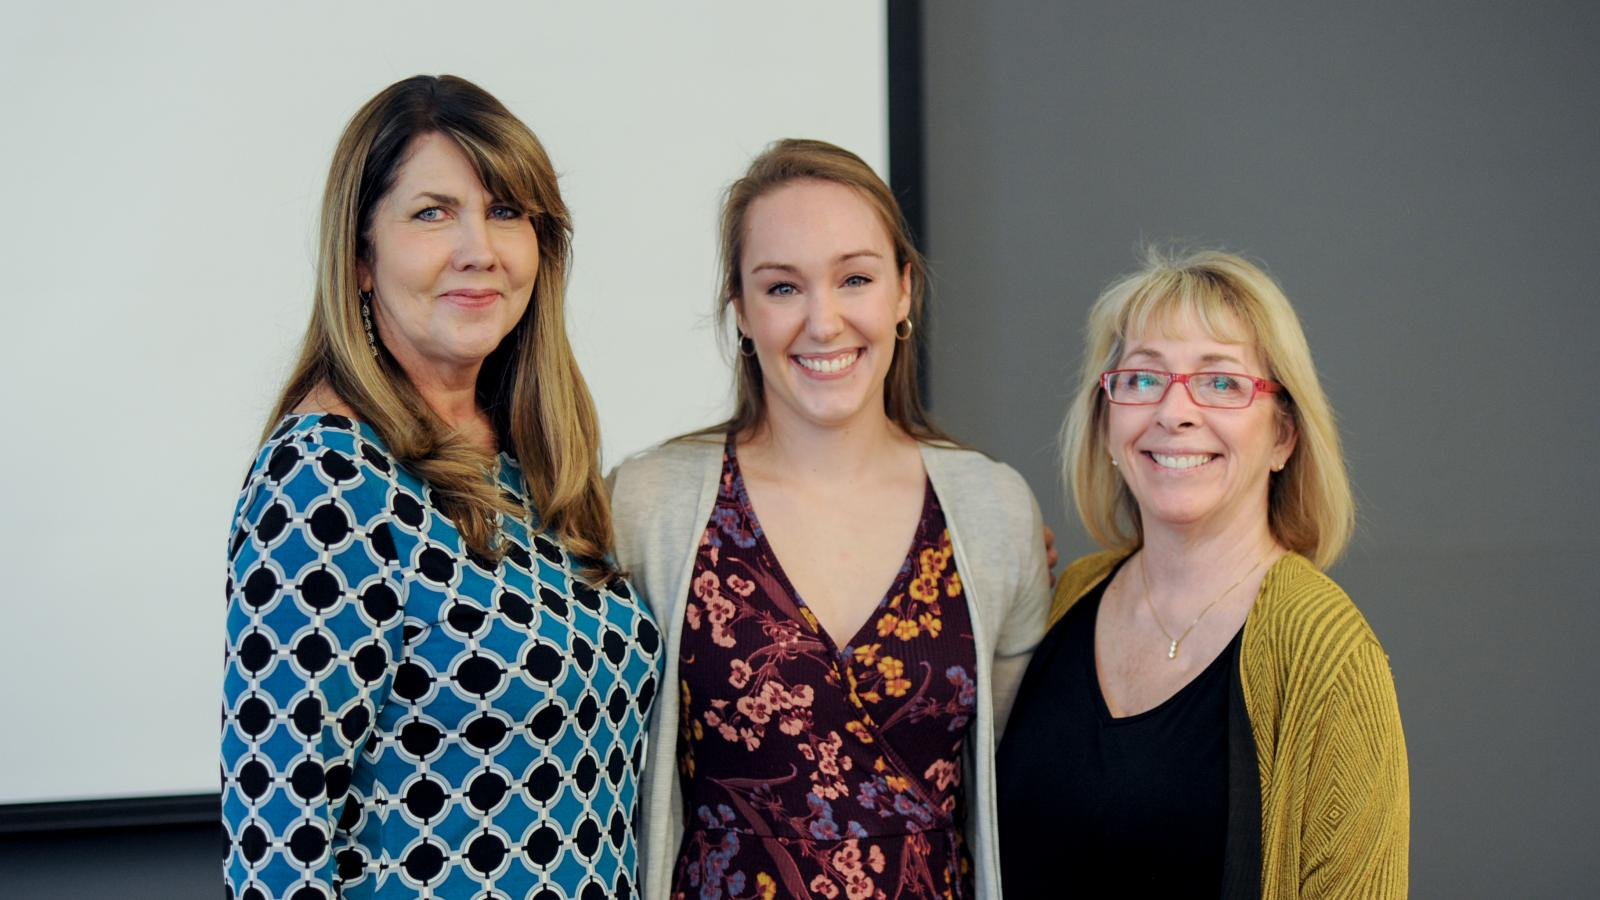 2018 AAEP Outstanding GTA and Graduate Associate Teaching Award winner Elle Pierman (center) with course advisors Dr. Shari Savage (left) and Dr. Christine Ballengee Morris (right)